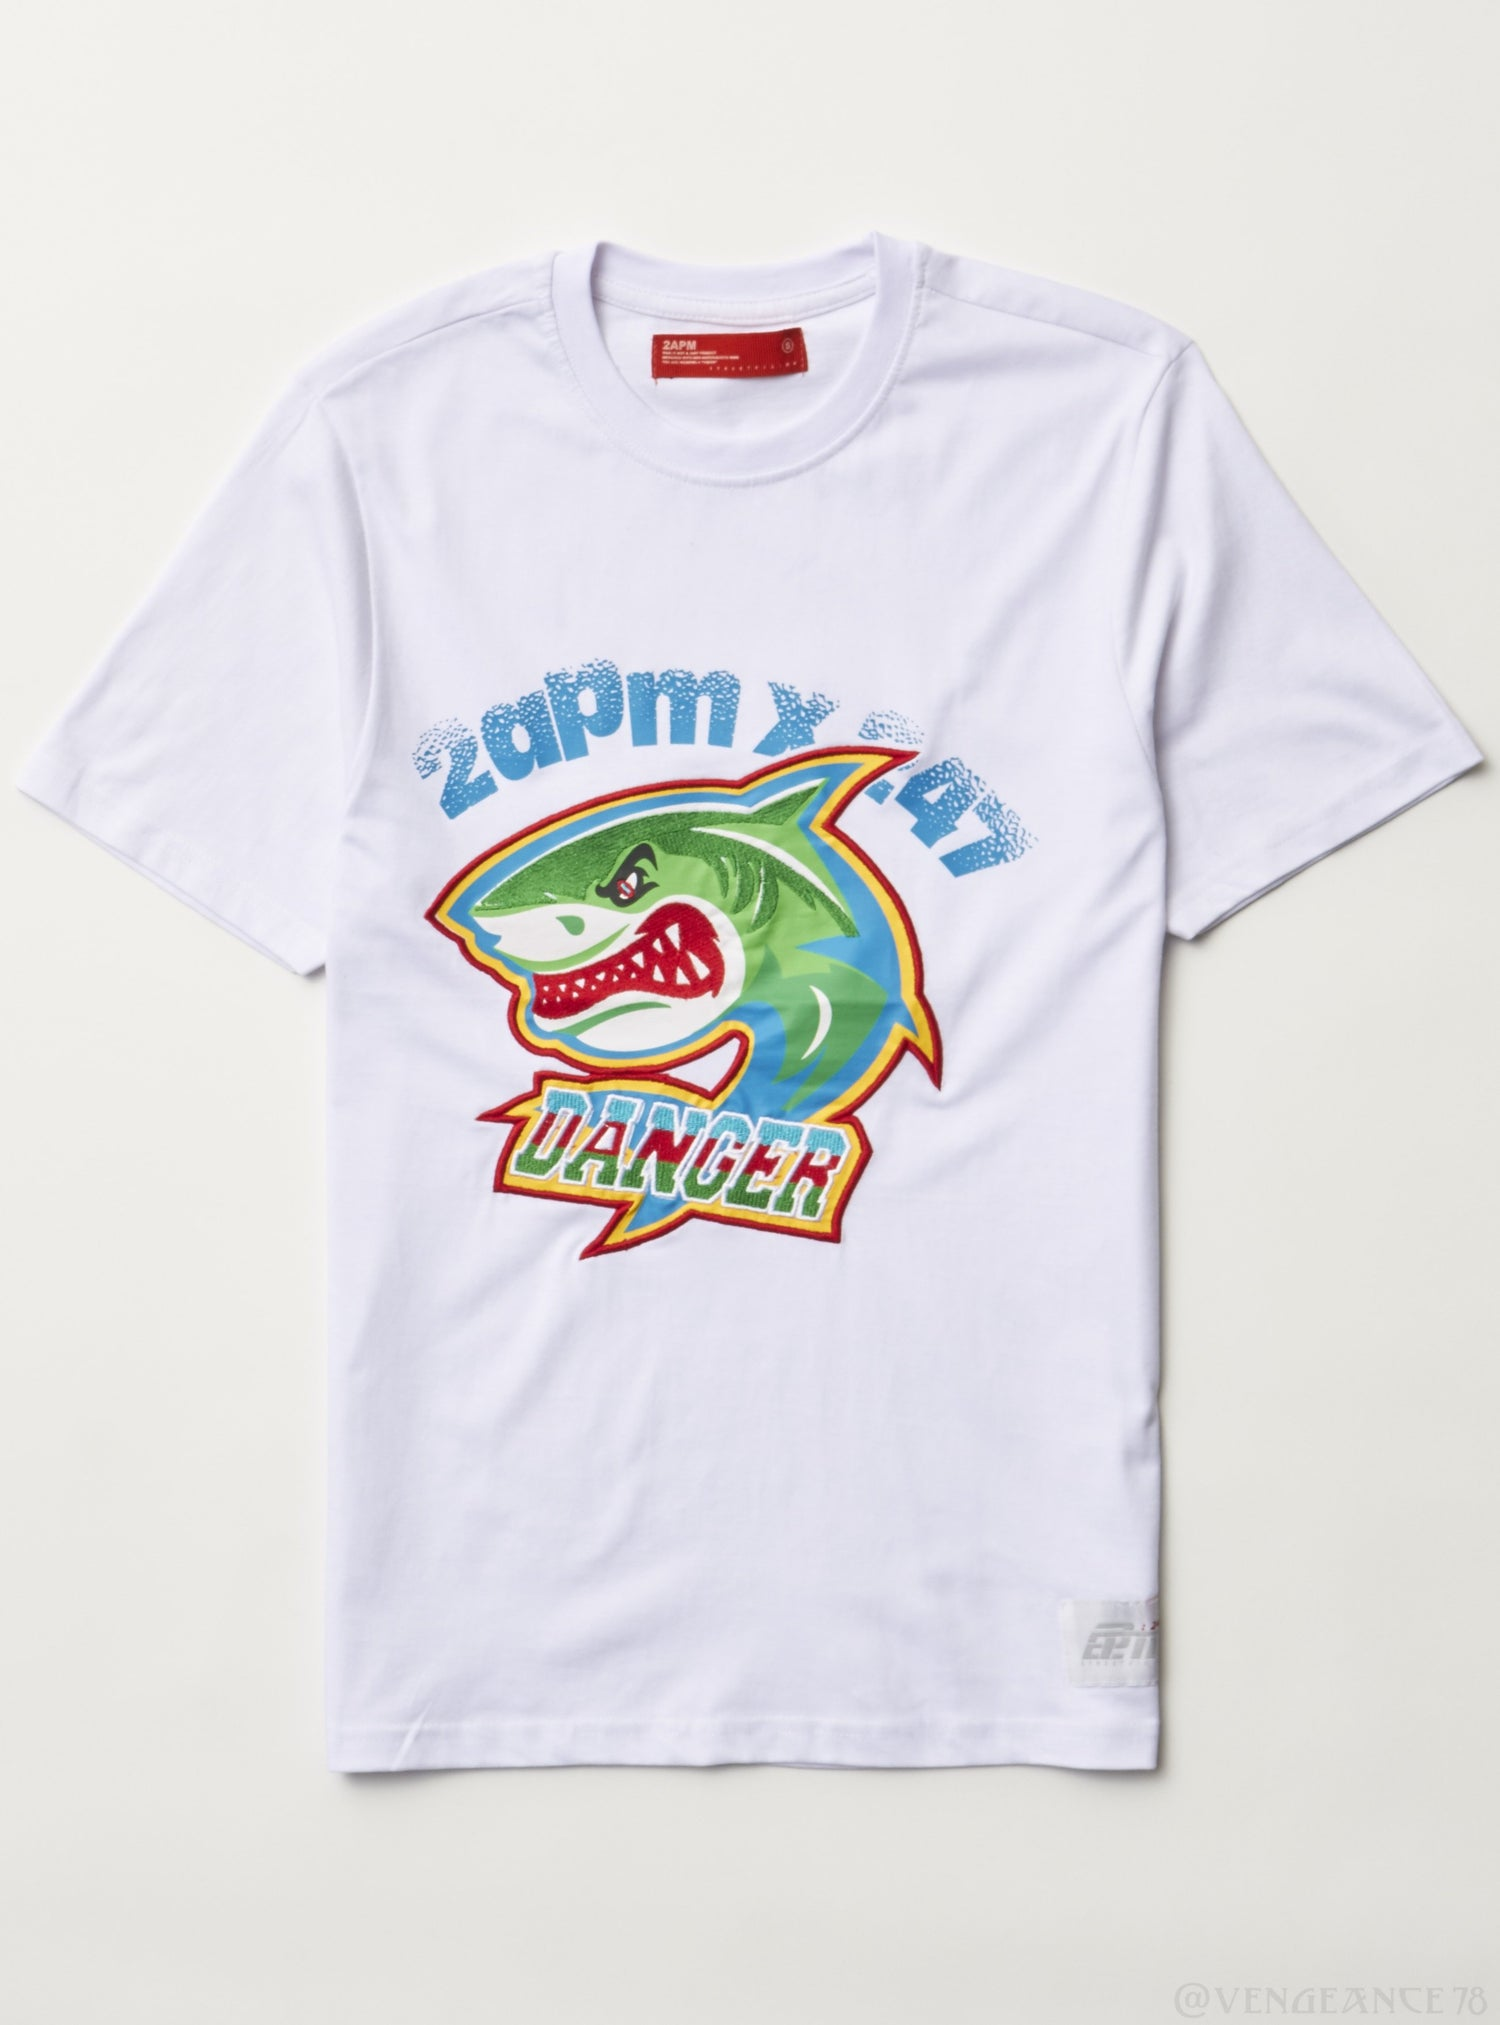 2APM T-Shirt - Shark Danger - White